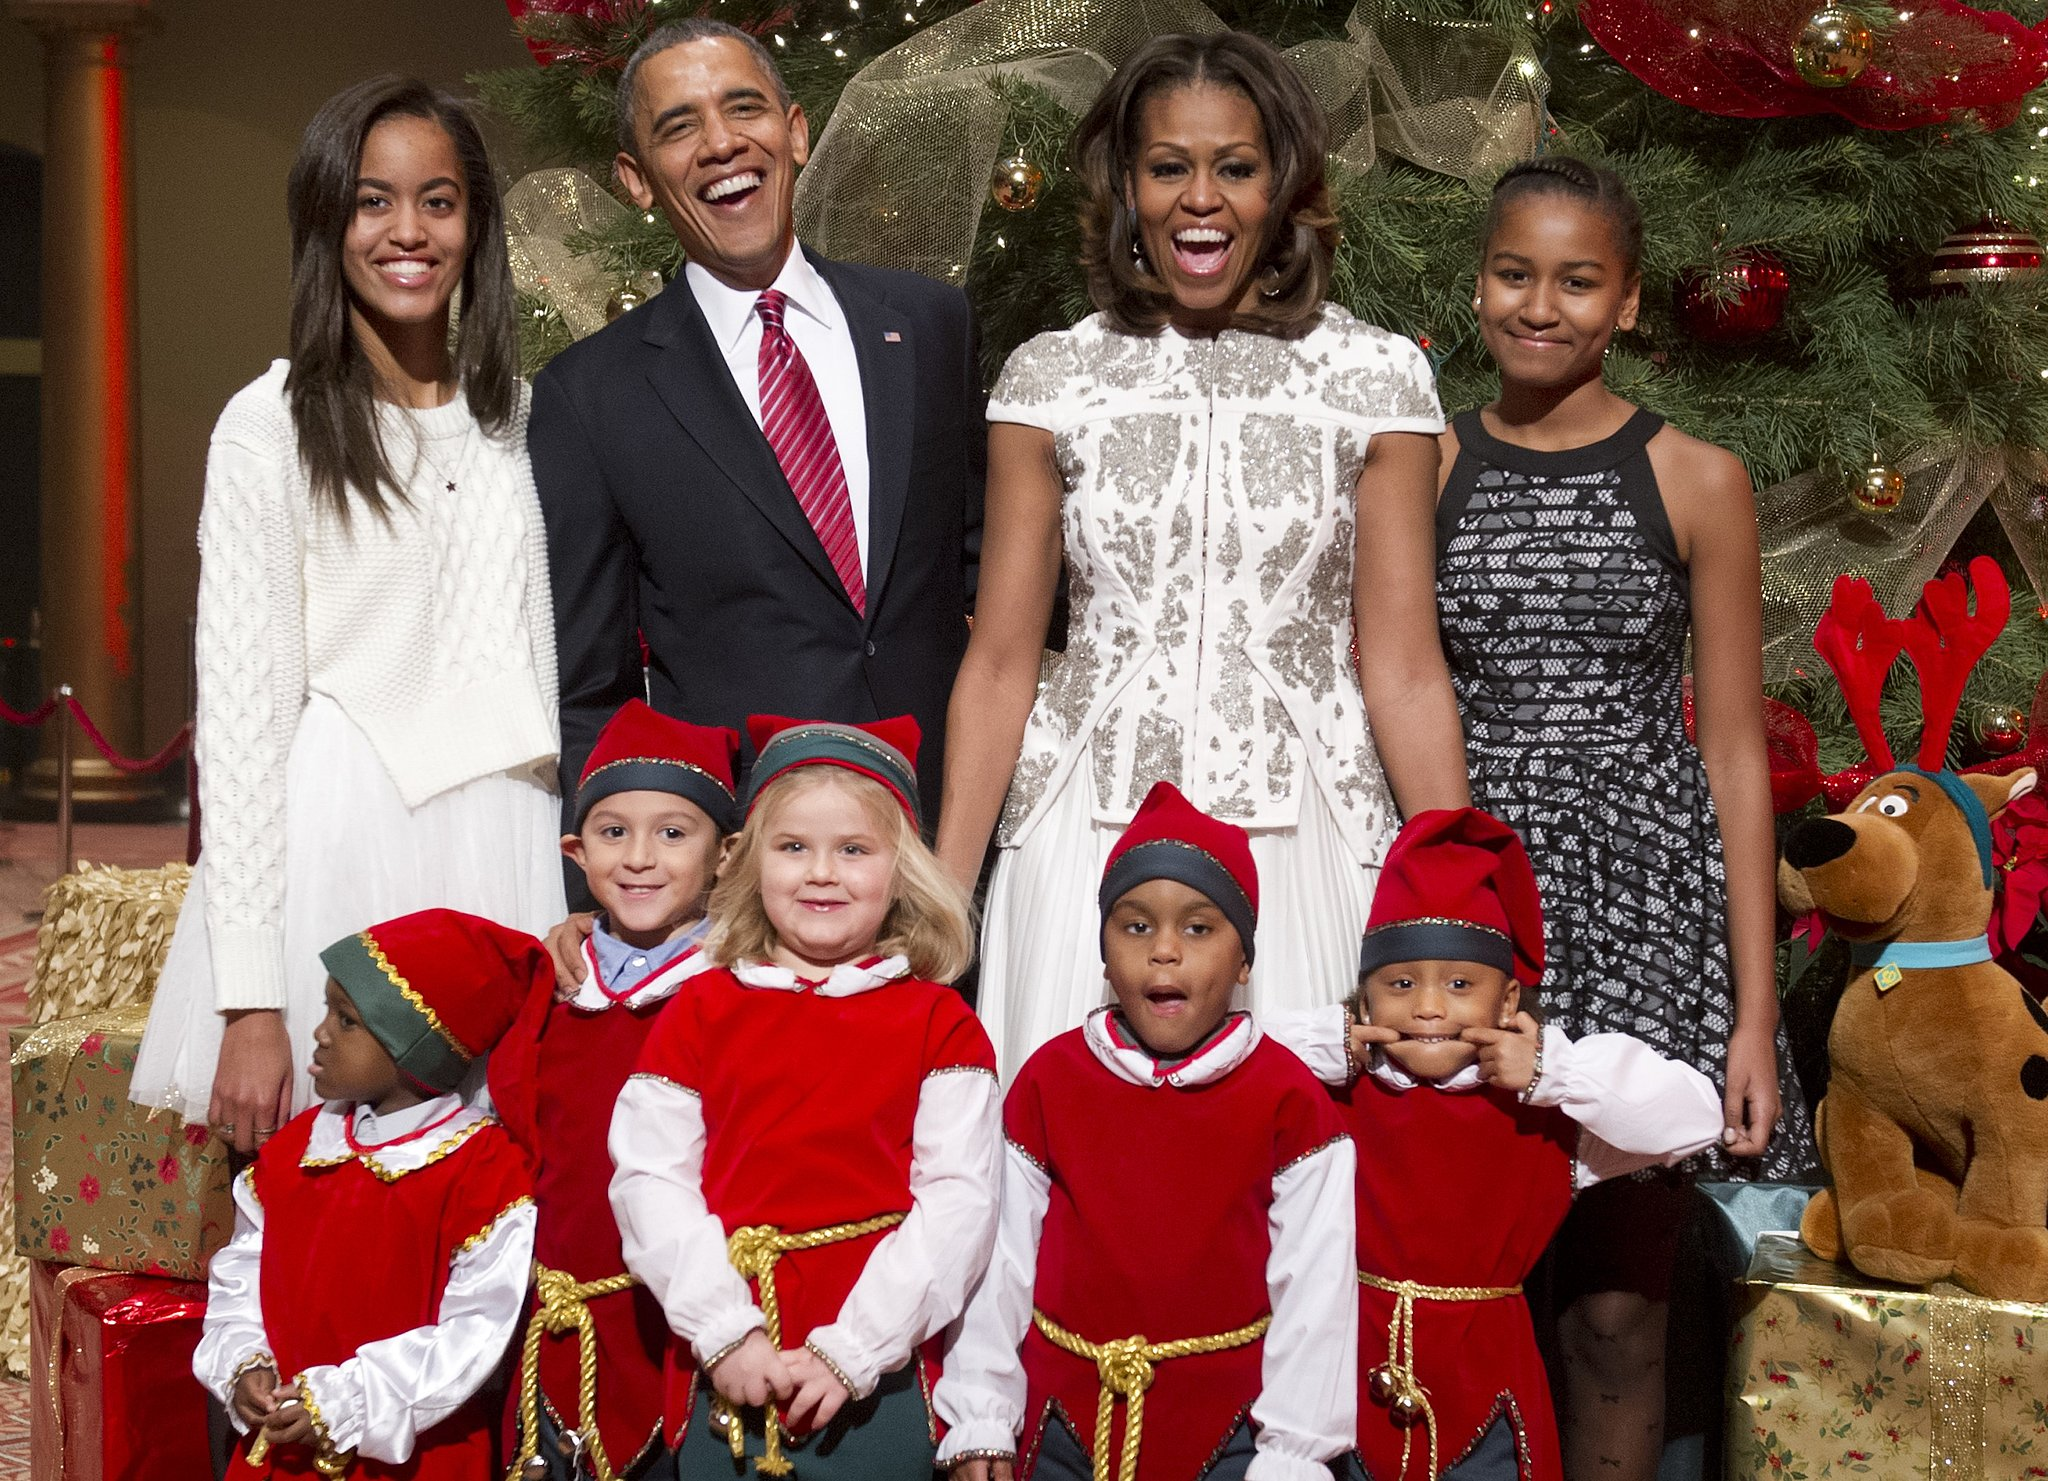 President Barack Obama and First Lady Michelle Obama had a laugh with their family